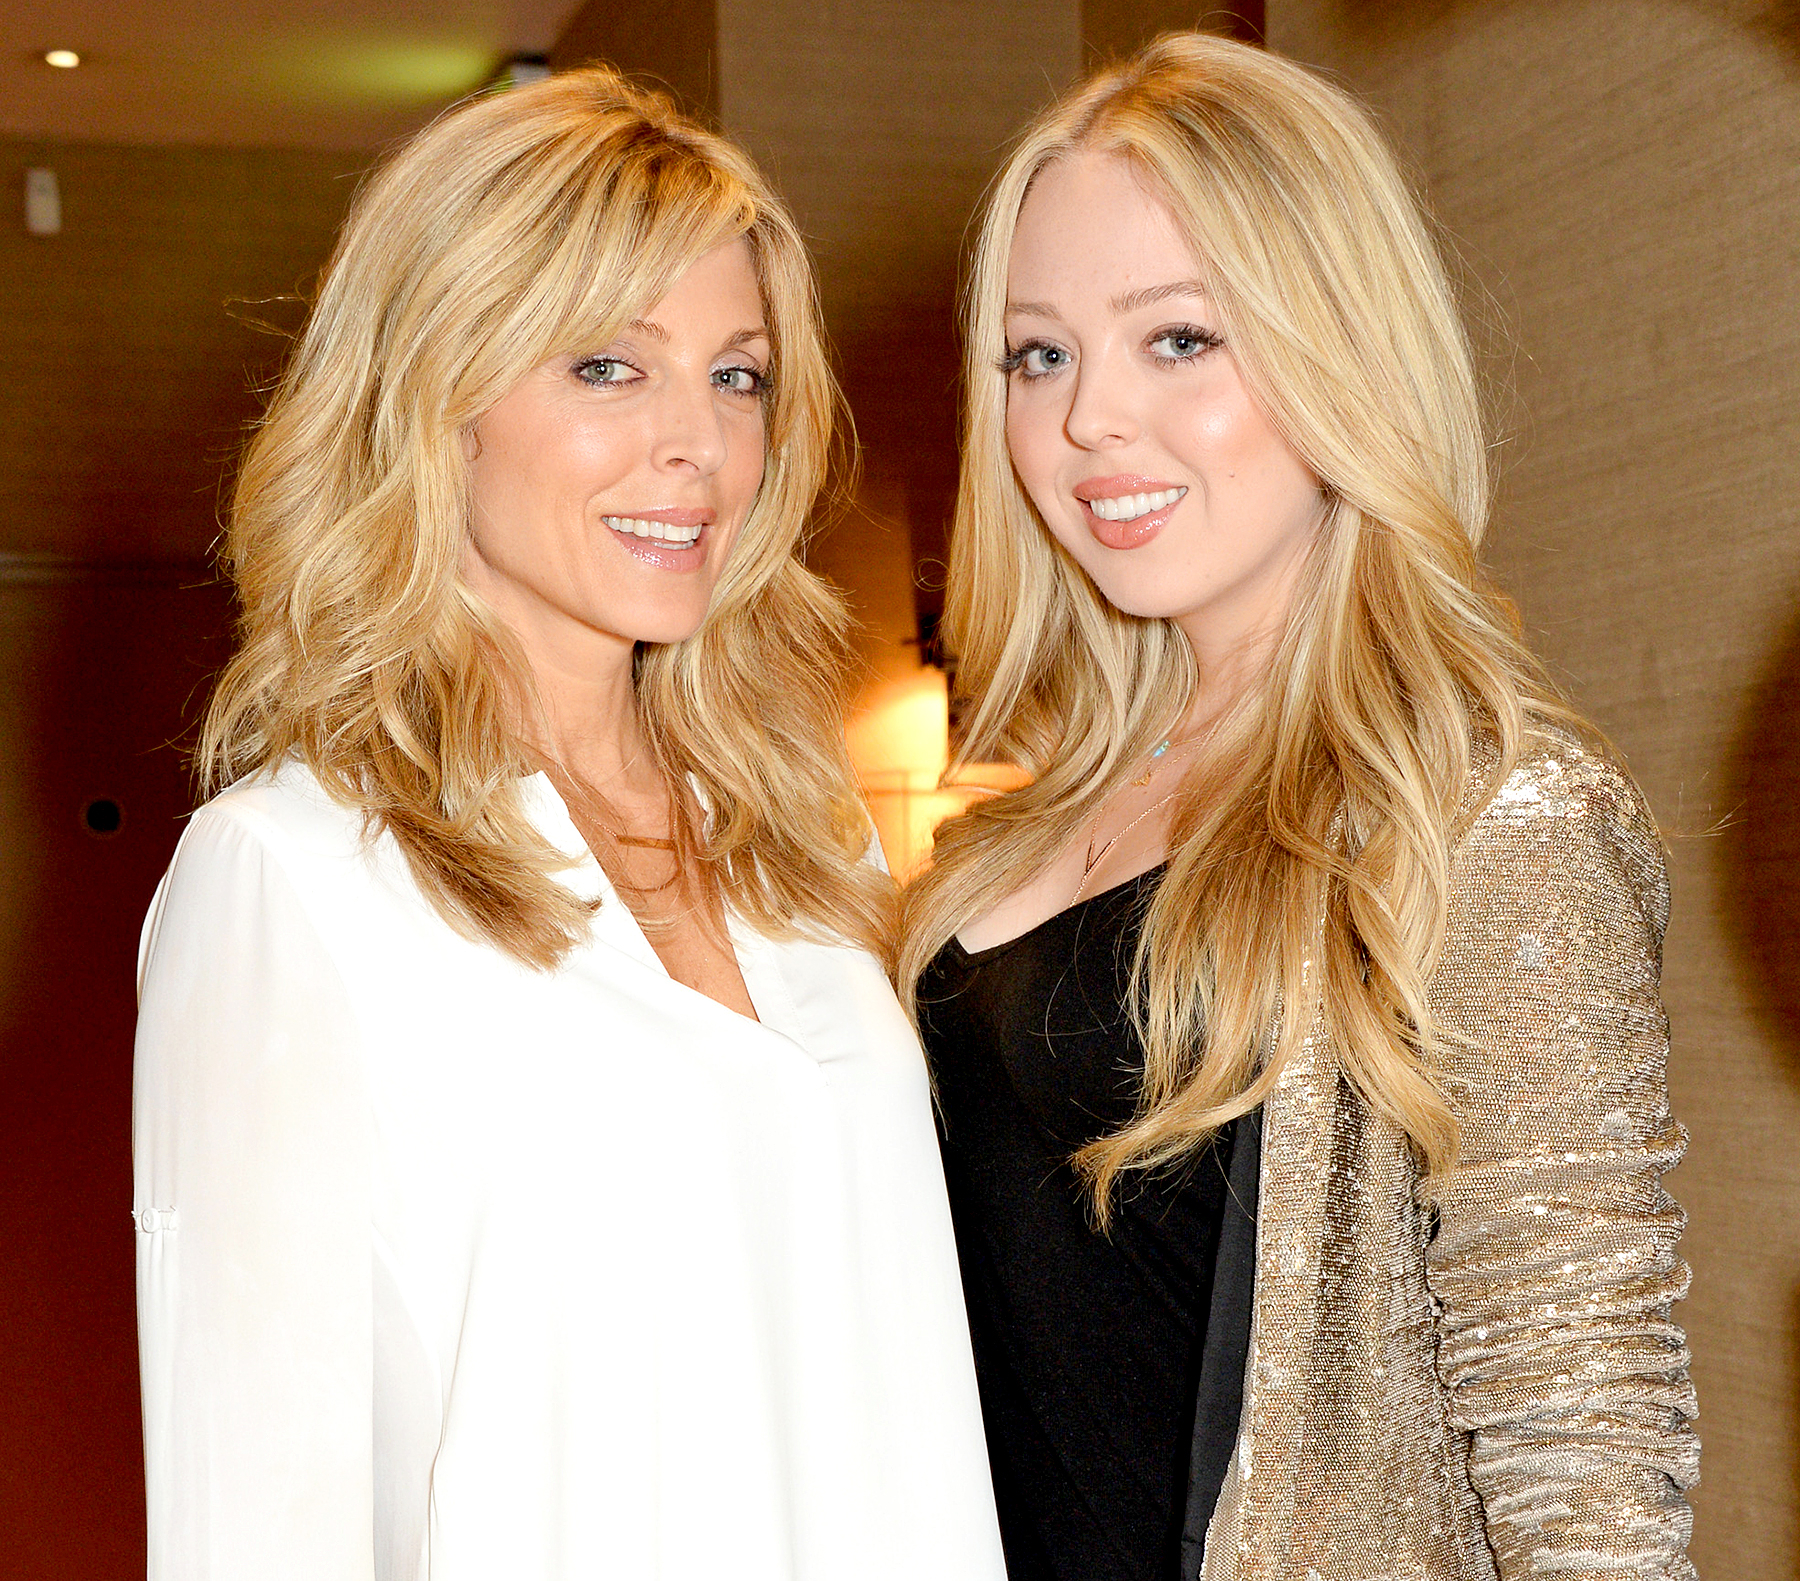 Marla Maples and Tiffany Trump have dinner at Sumosan on July 28, 2014 in London, England.